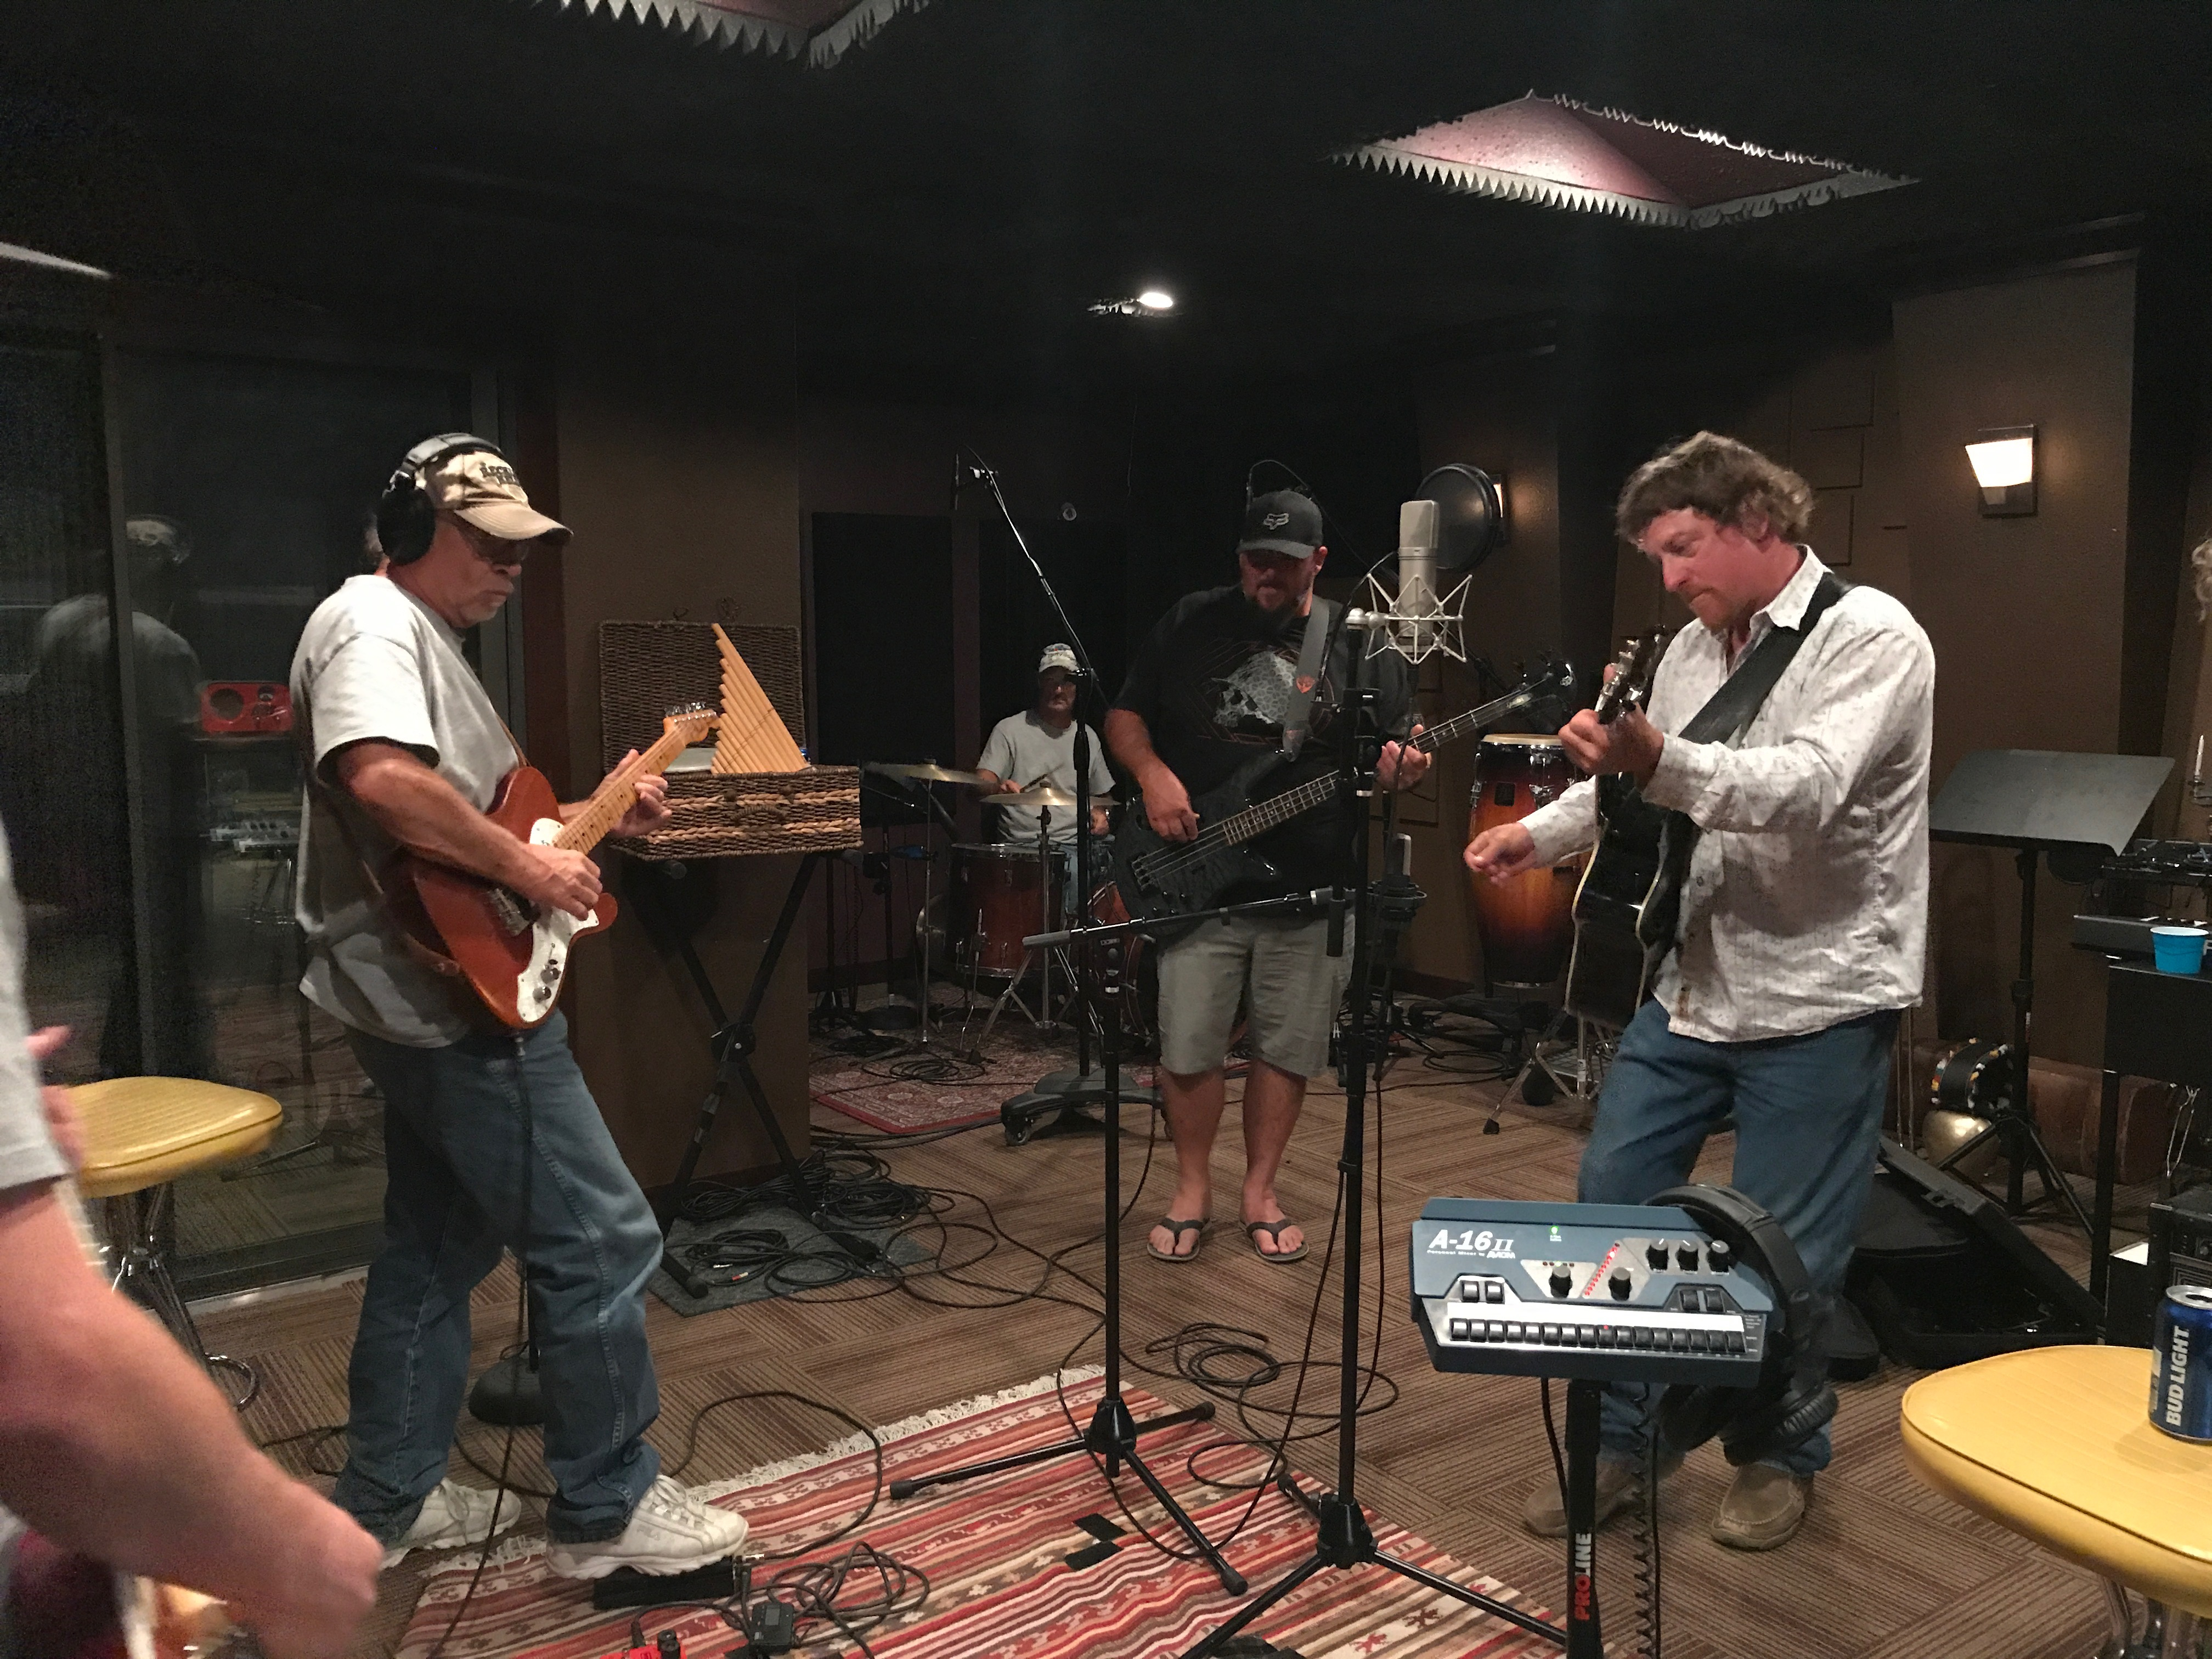 Double 7 Band Cutting Scratch Tracks